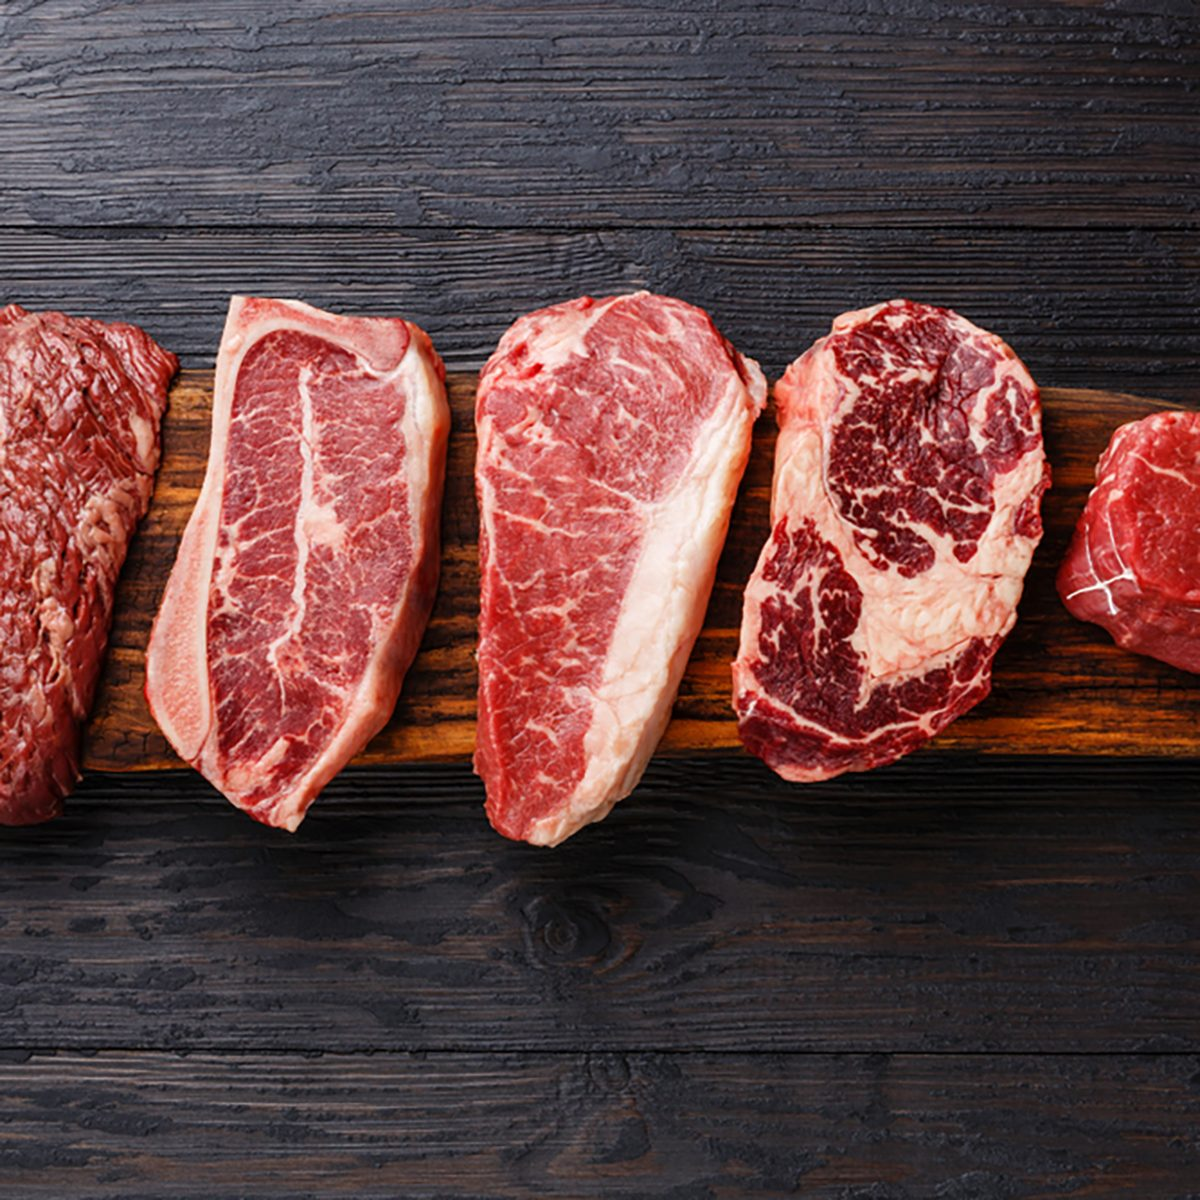 How to Cook The Best Steak: Grilling Pros Share Their Secrets